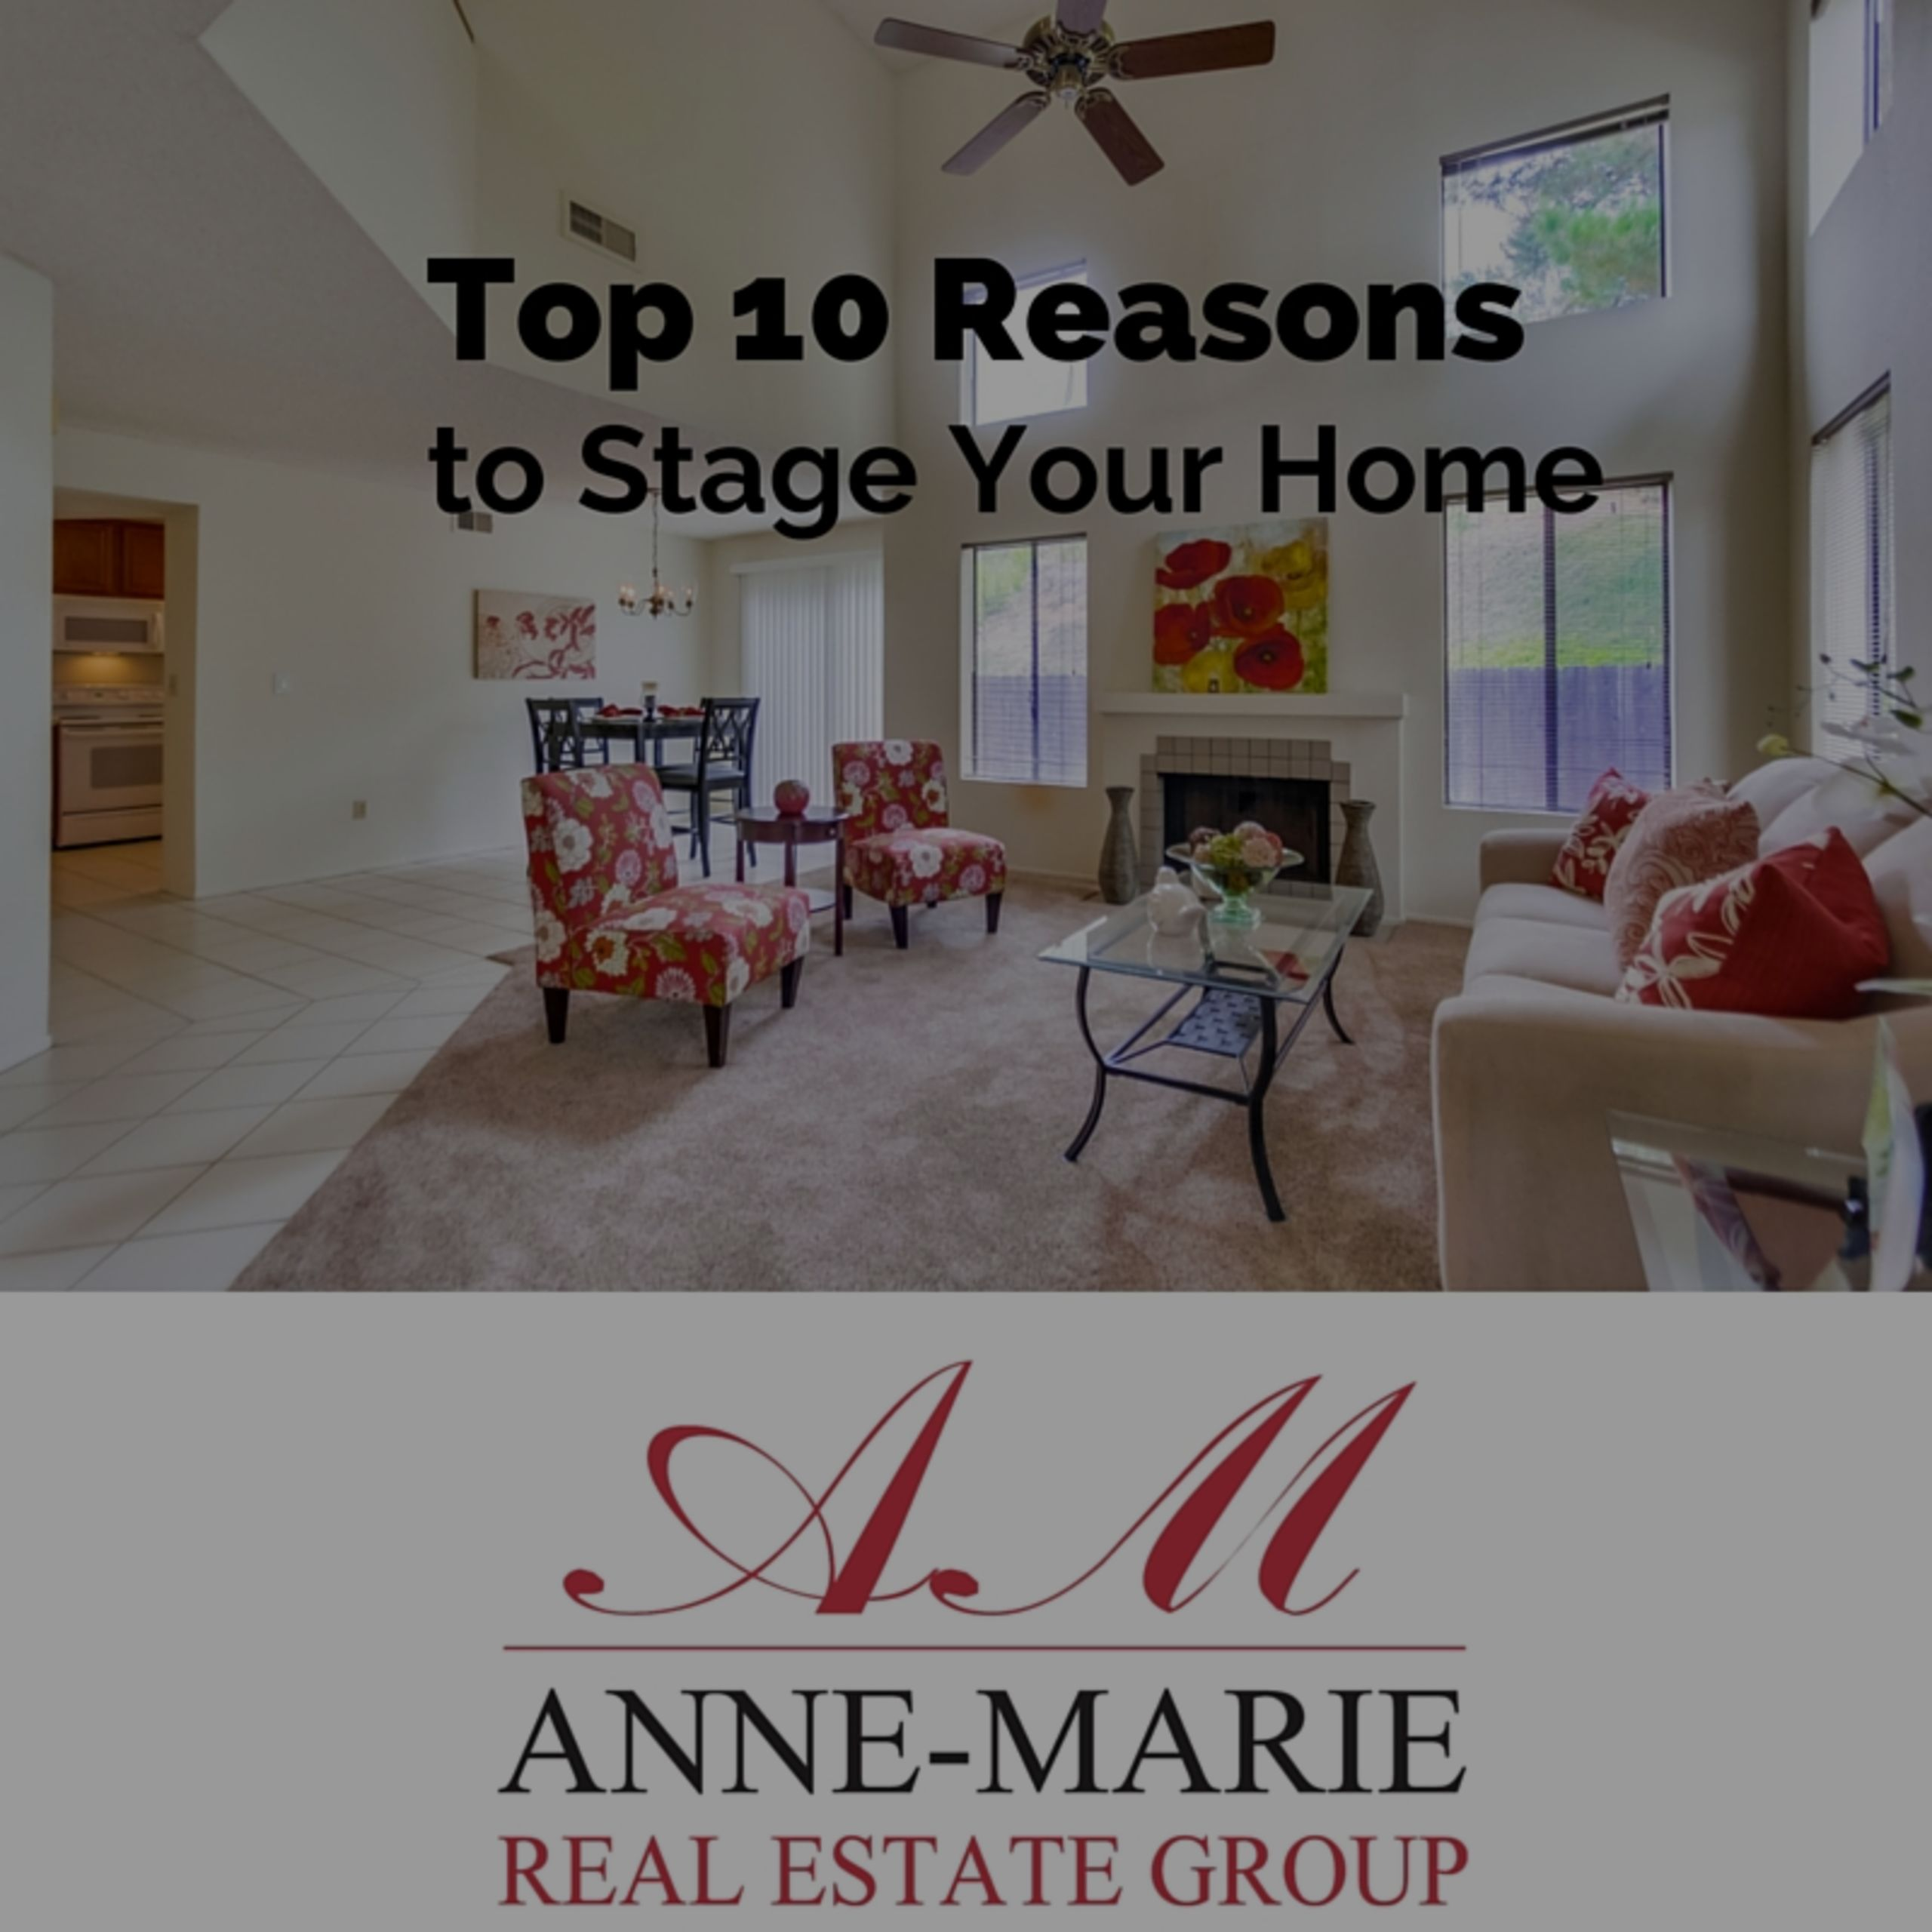 Top 10 Reasons to Stage Your Home